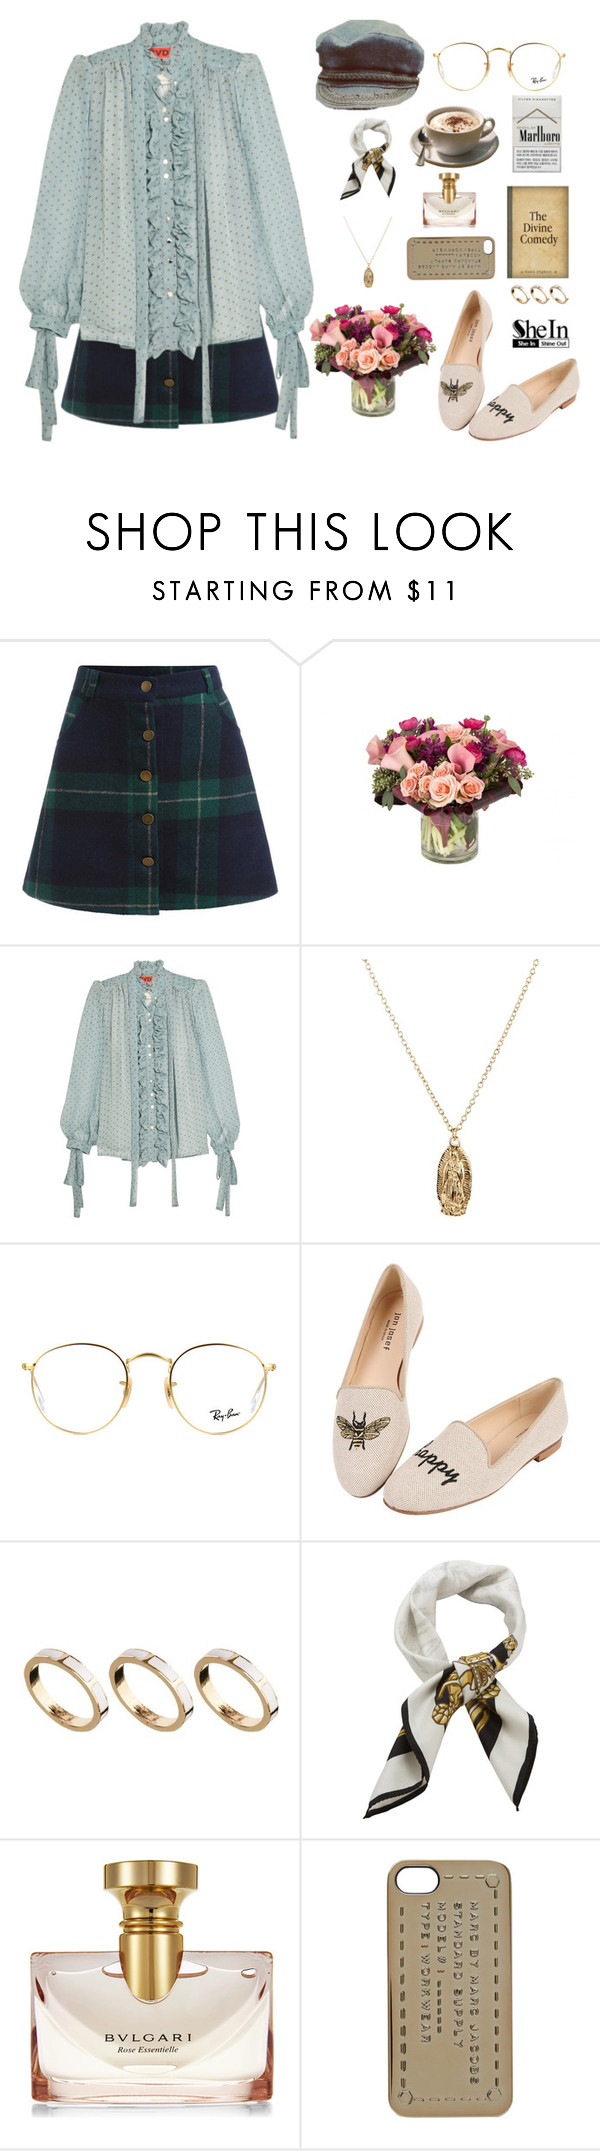 """Green Blue Plaid Buttons Skirt"" by gabychinchilla ❤ liked on Polyvore featuring Jayson Home, RVDK, ASOS, Ray-Ban, Jon Josef, Alighieri, Givenchy, Bulgari and Marc by Marc Jacobs"